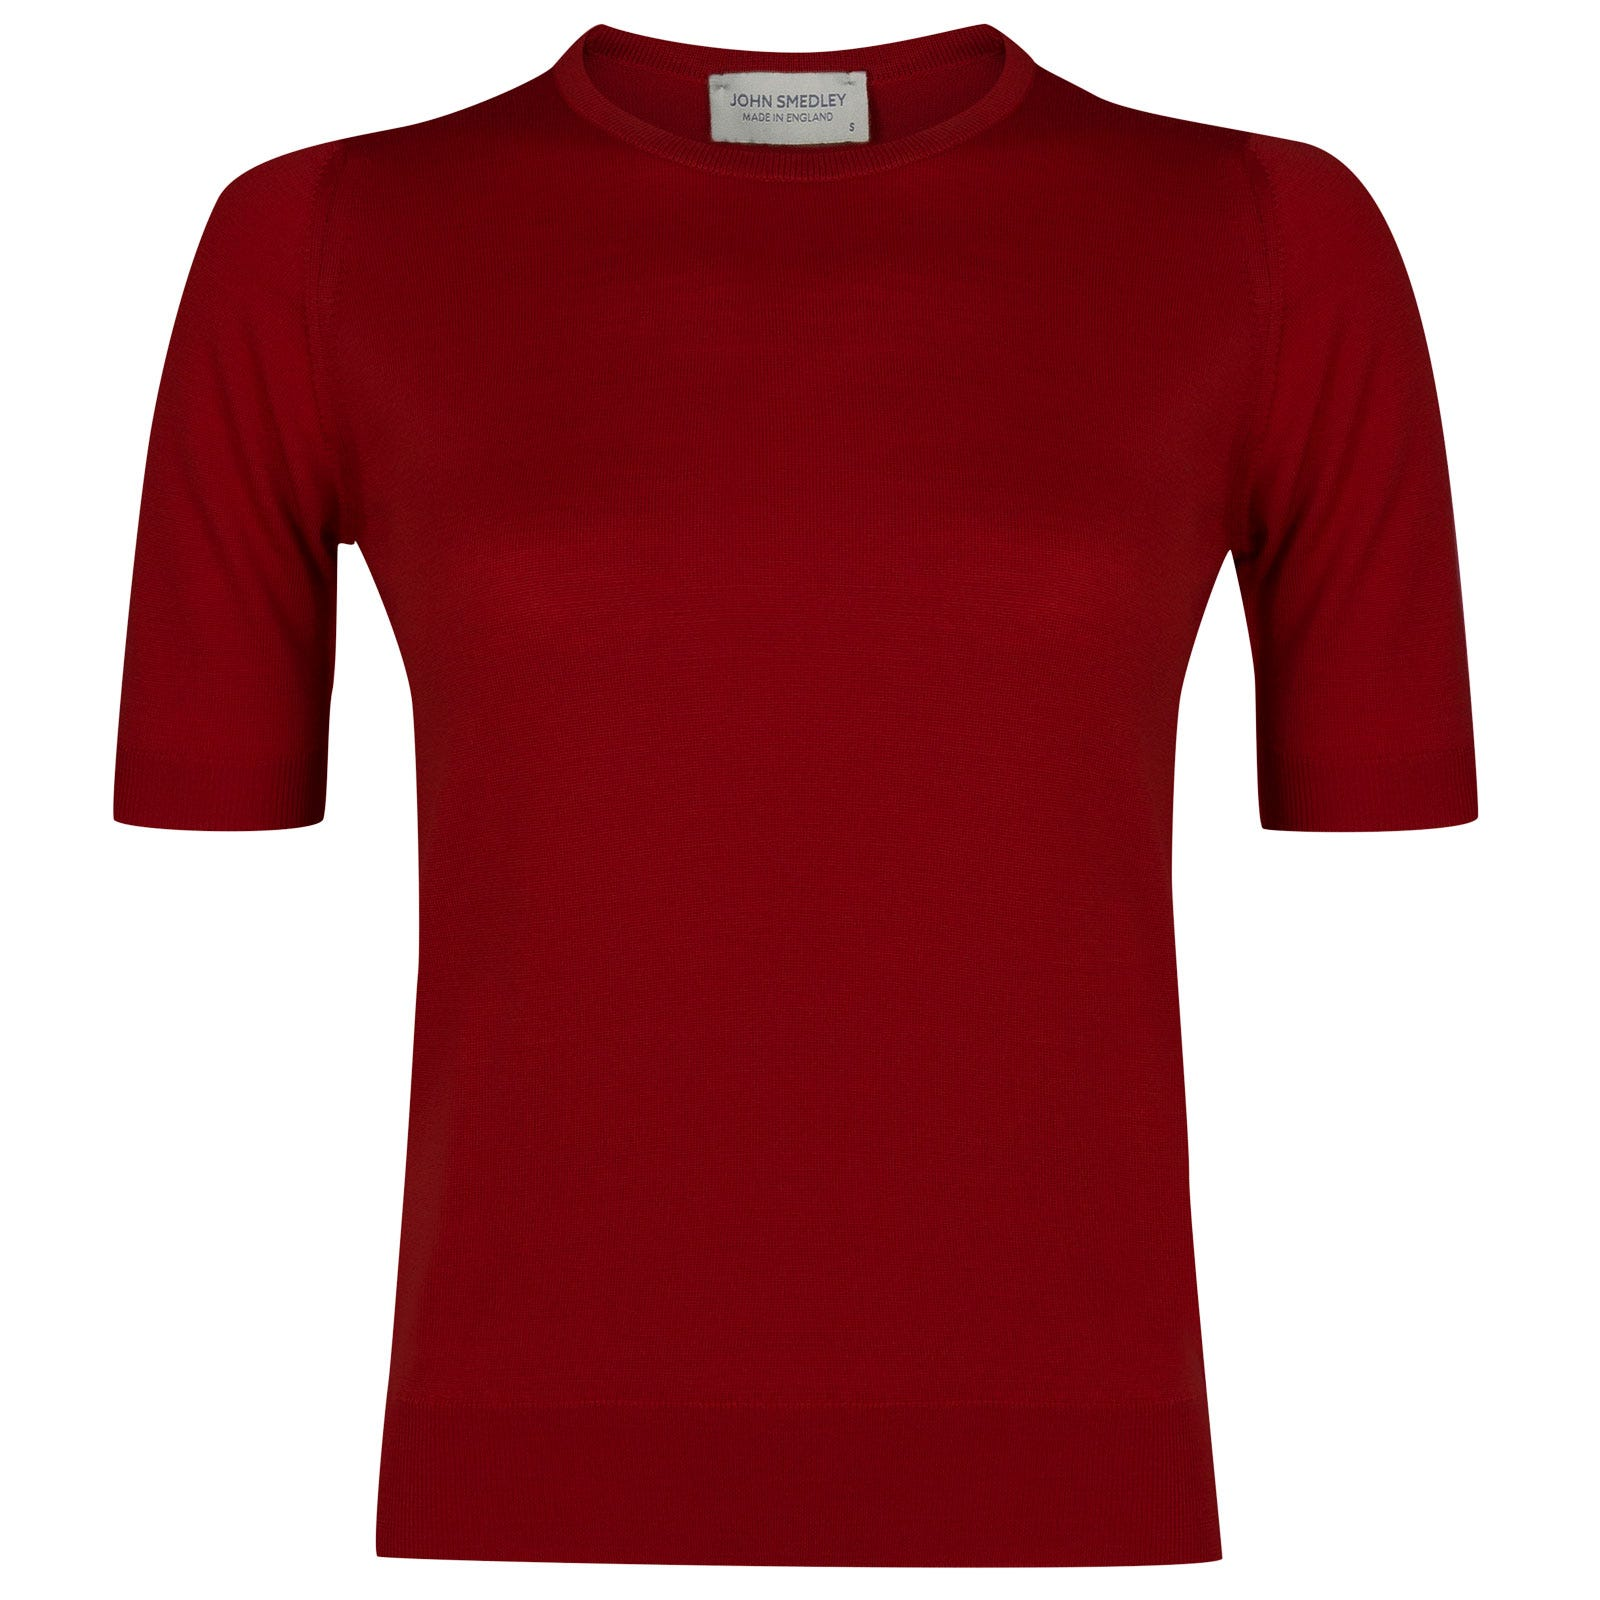 John Smedley trieste Merino Wool Sweater in Crimson Forest-M